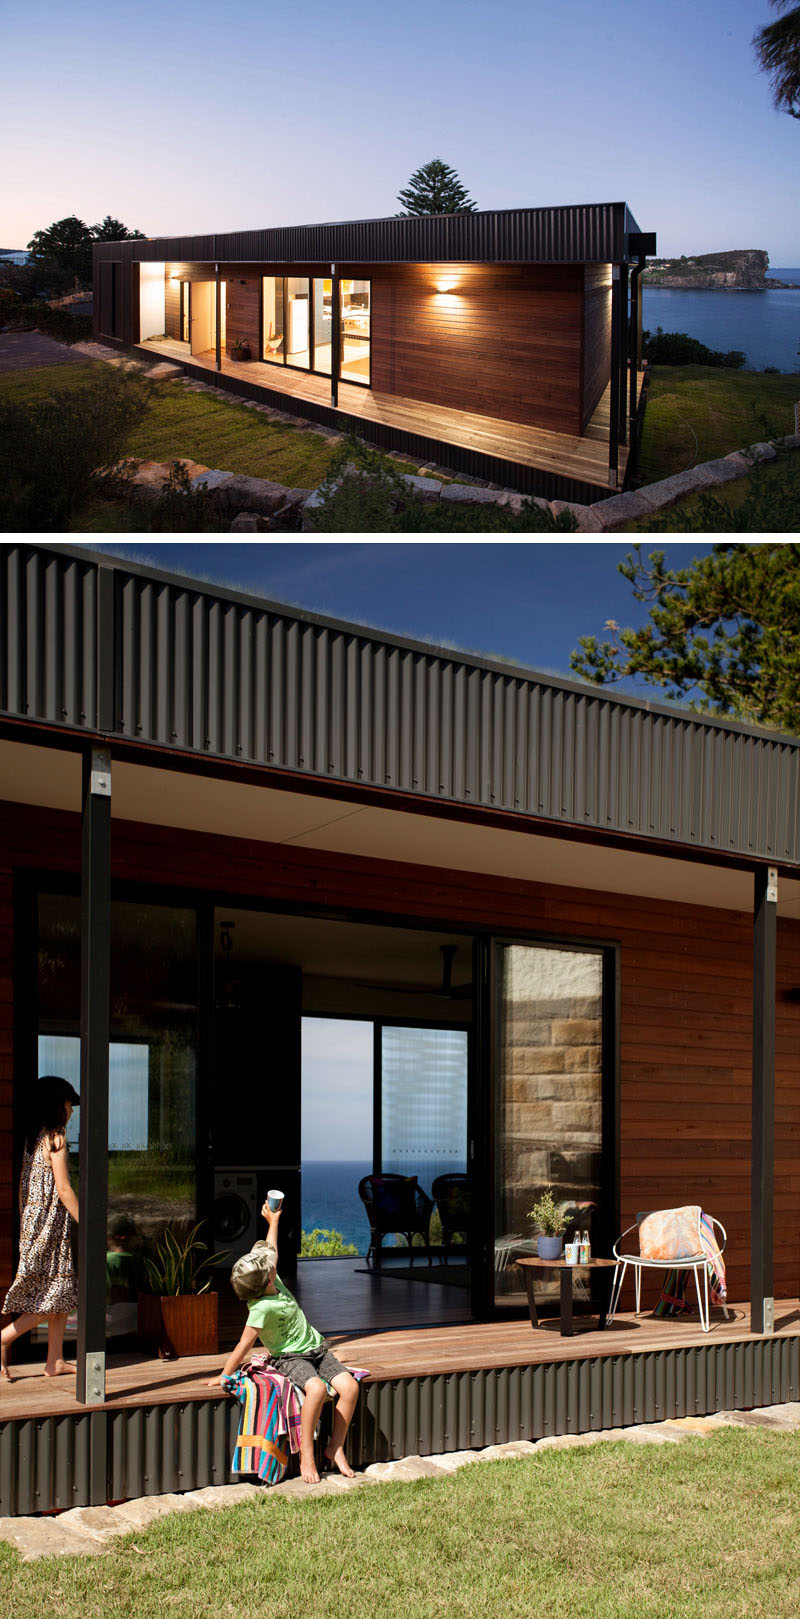 The Green Roof Prefabricated House Aesthetic And